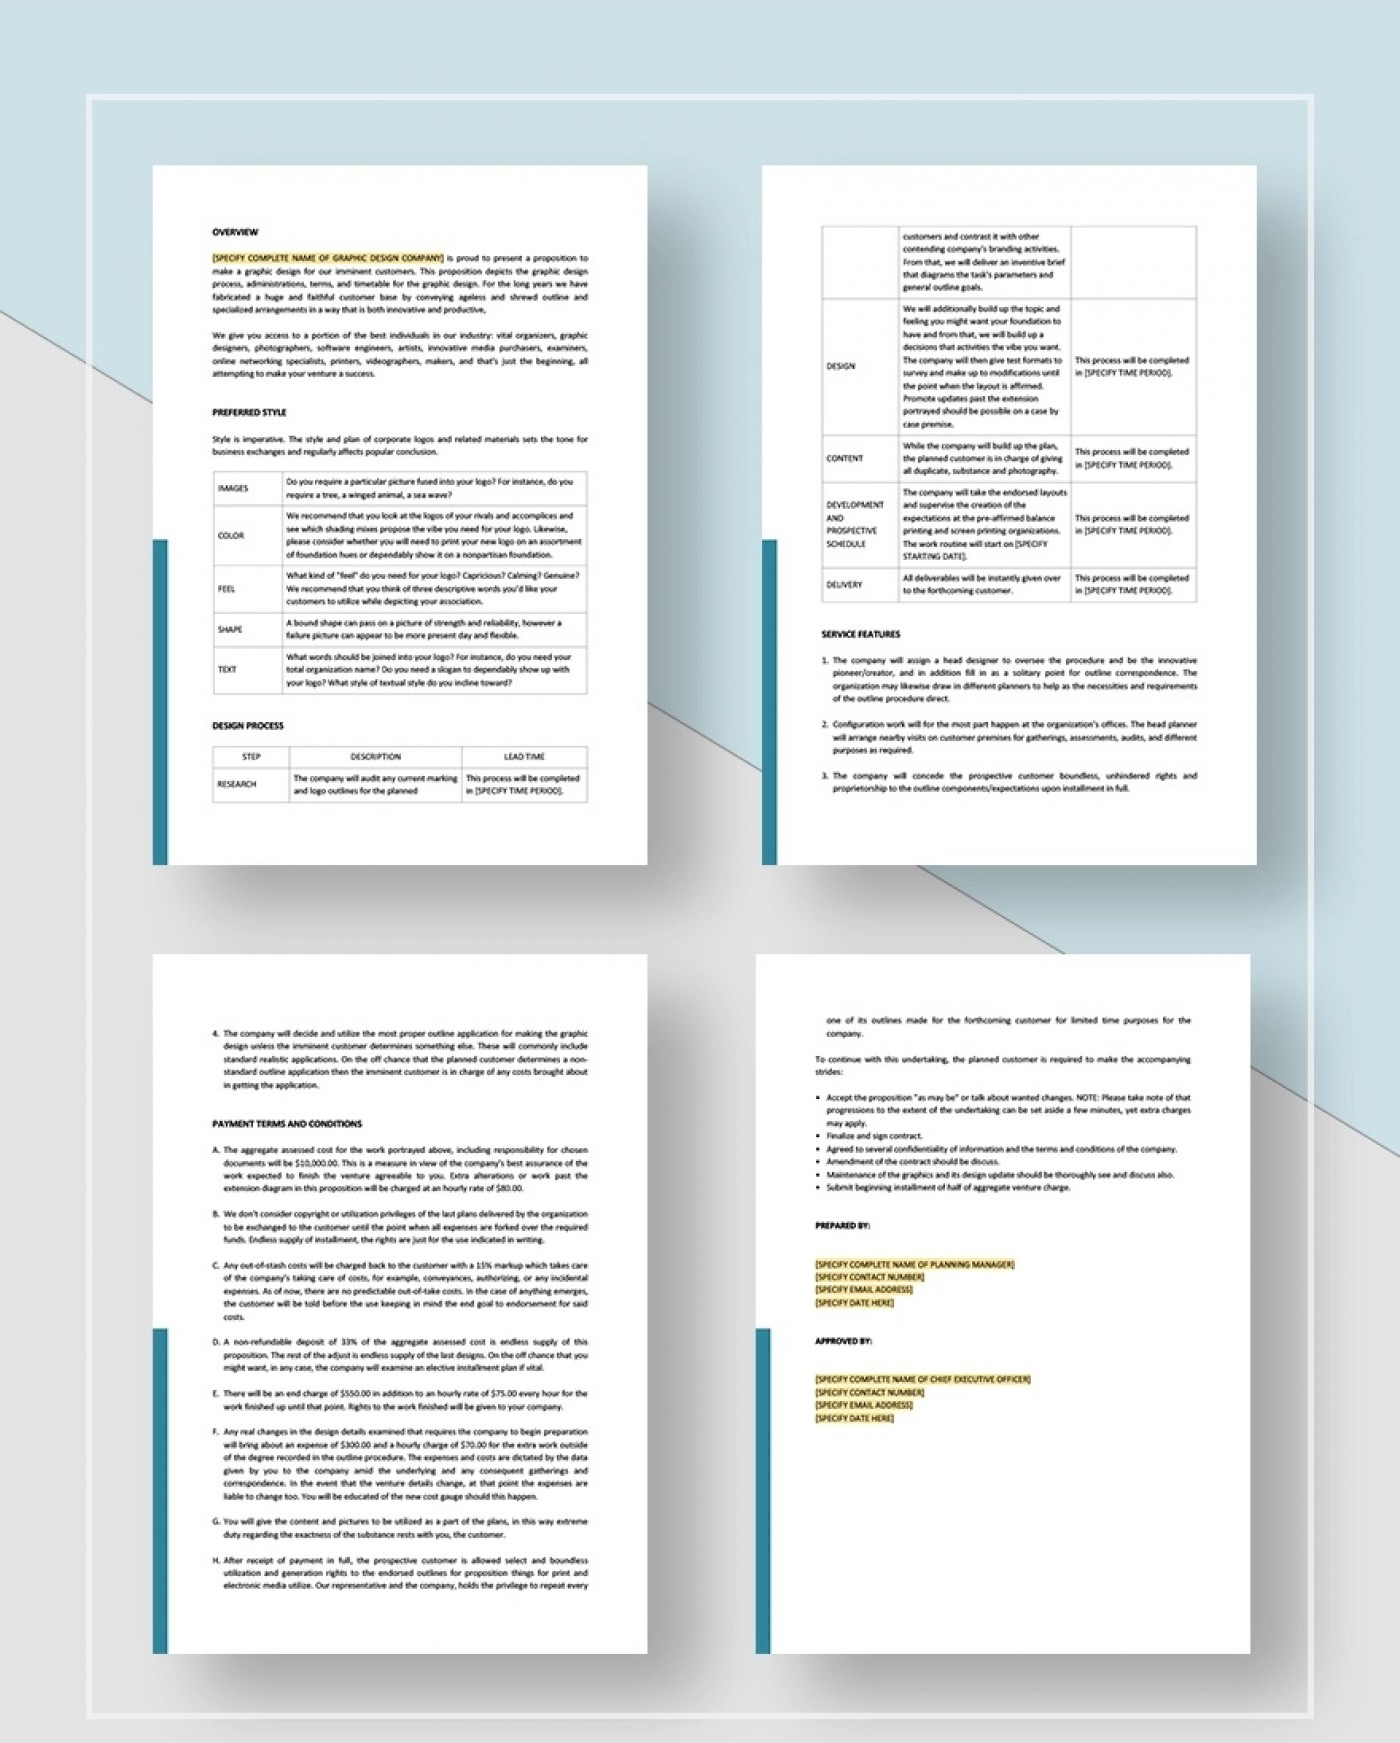 Graphic Design Proposal Template Sample Complete Jpg  Free Doc Pdf1400